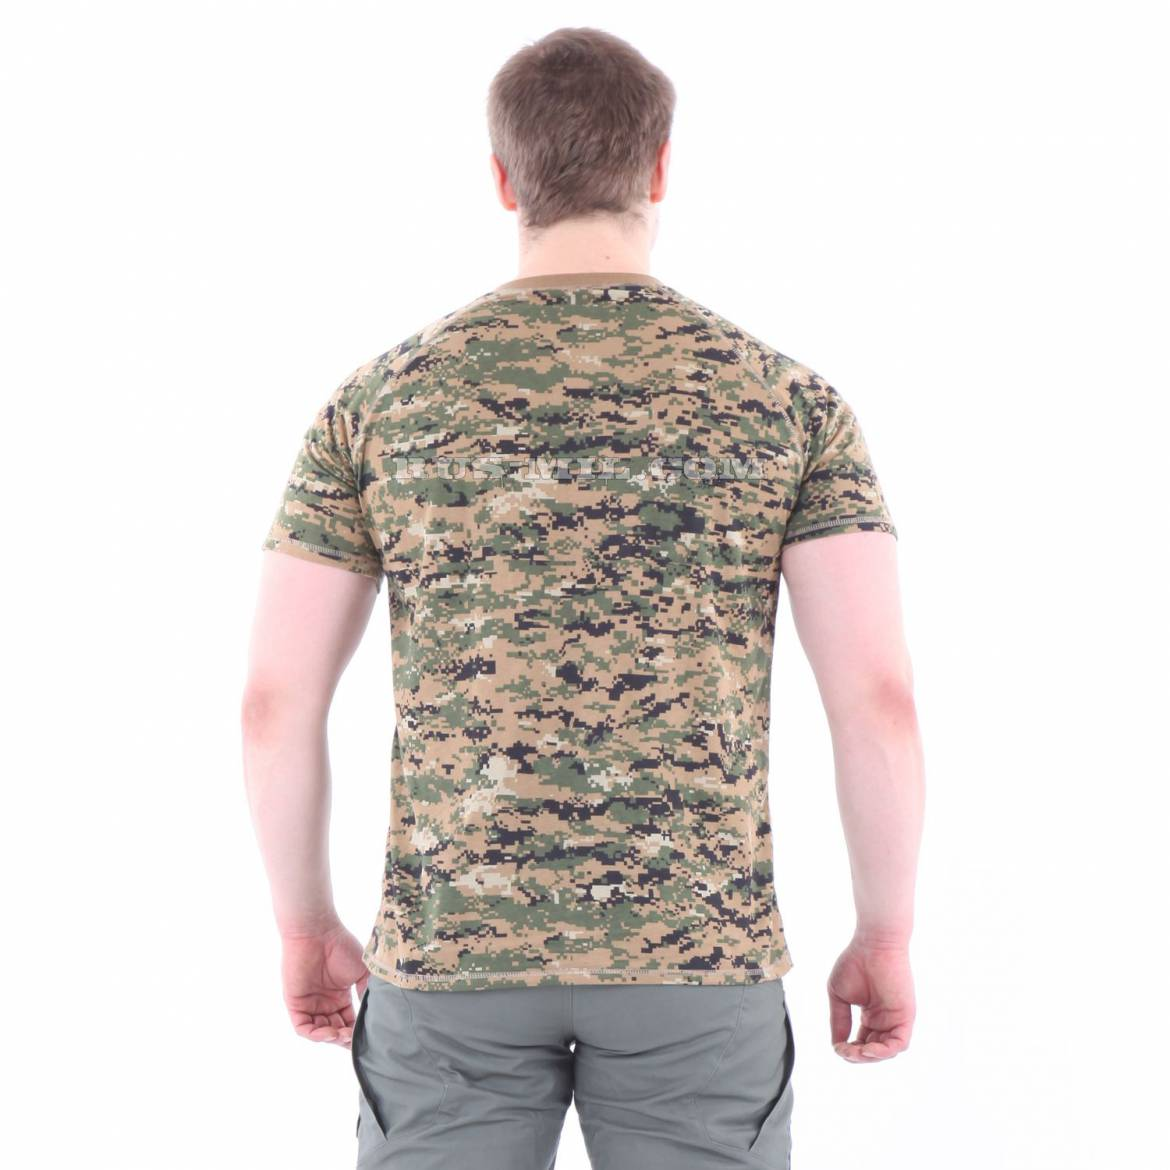 Russian-Cotton-T-Shirt-in-Tsifrovoy-Les-for-sale.jpg